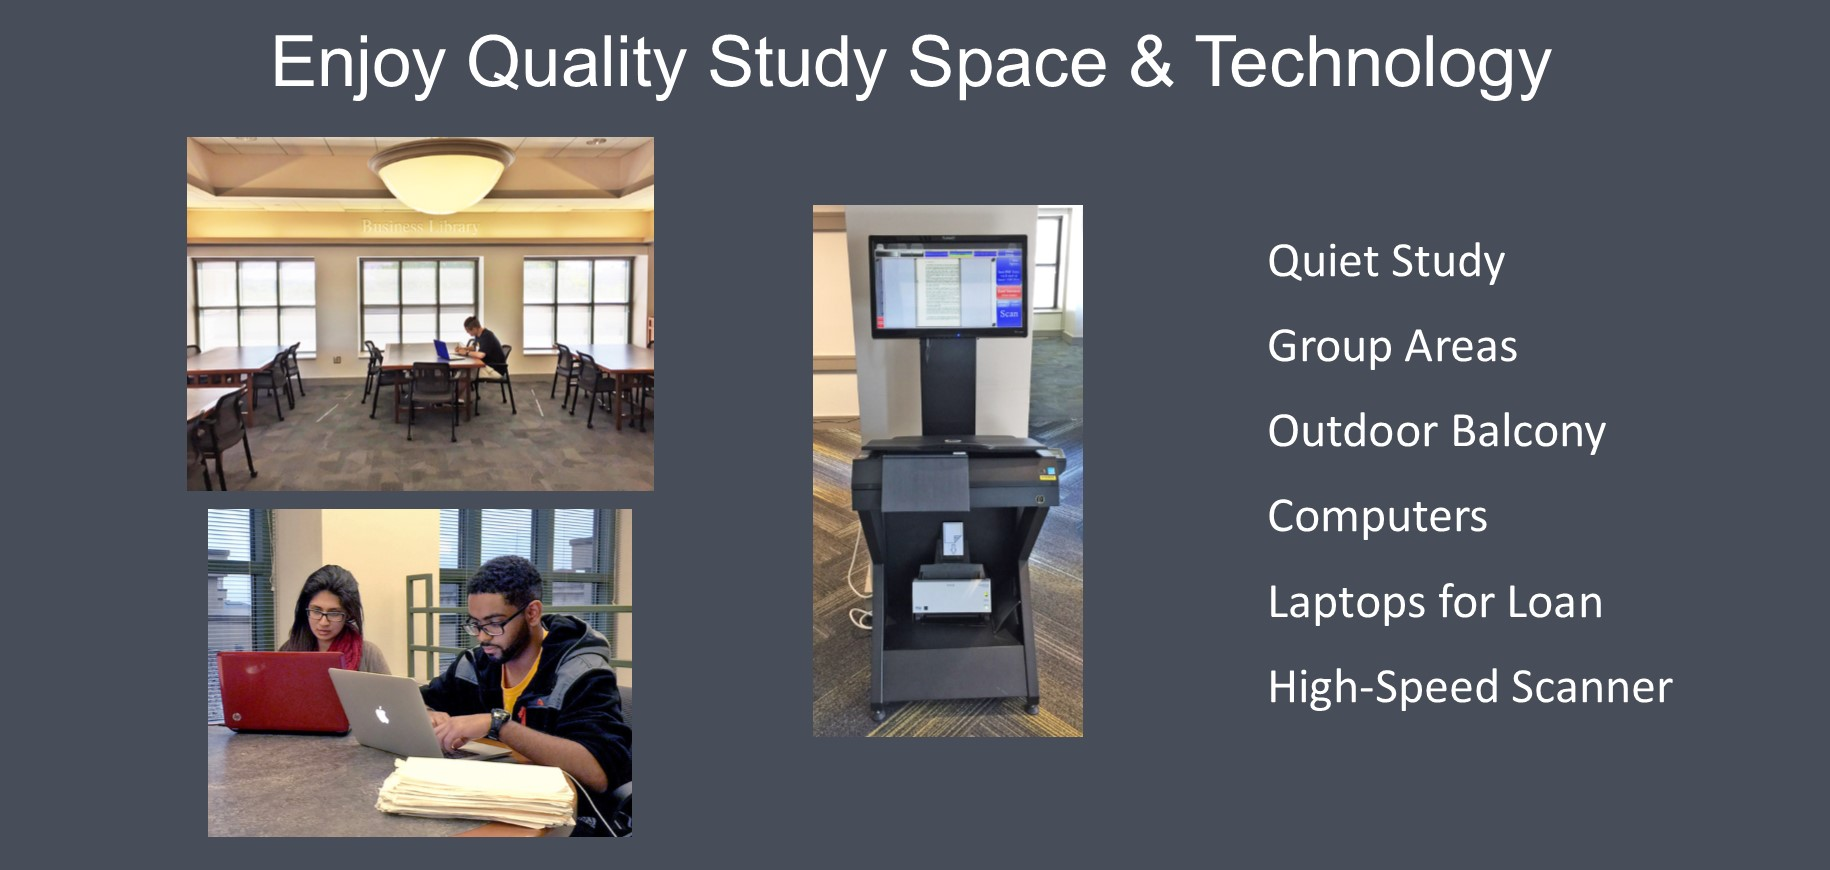 Enjoy quiet and group study areas, borrow laptops, use our high-speed scanner, and more.